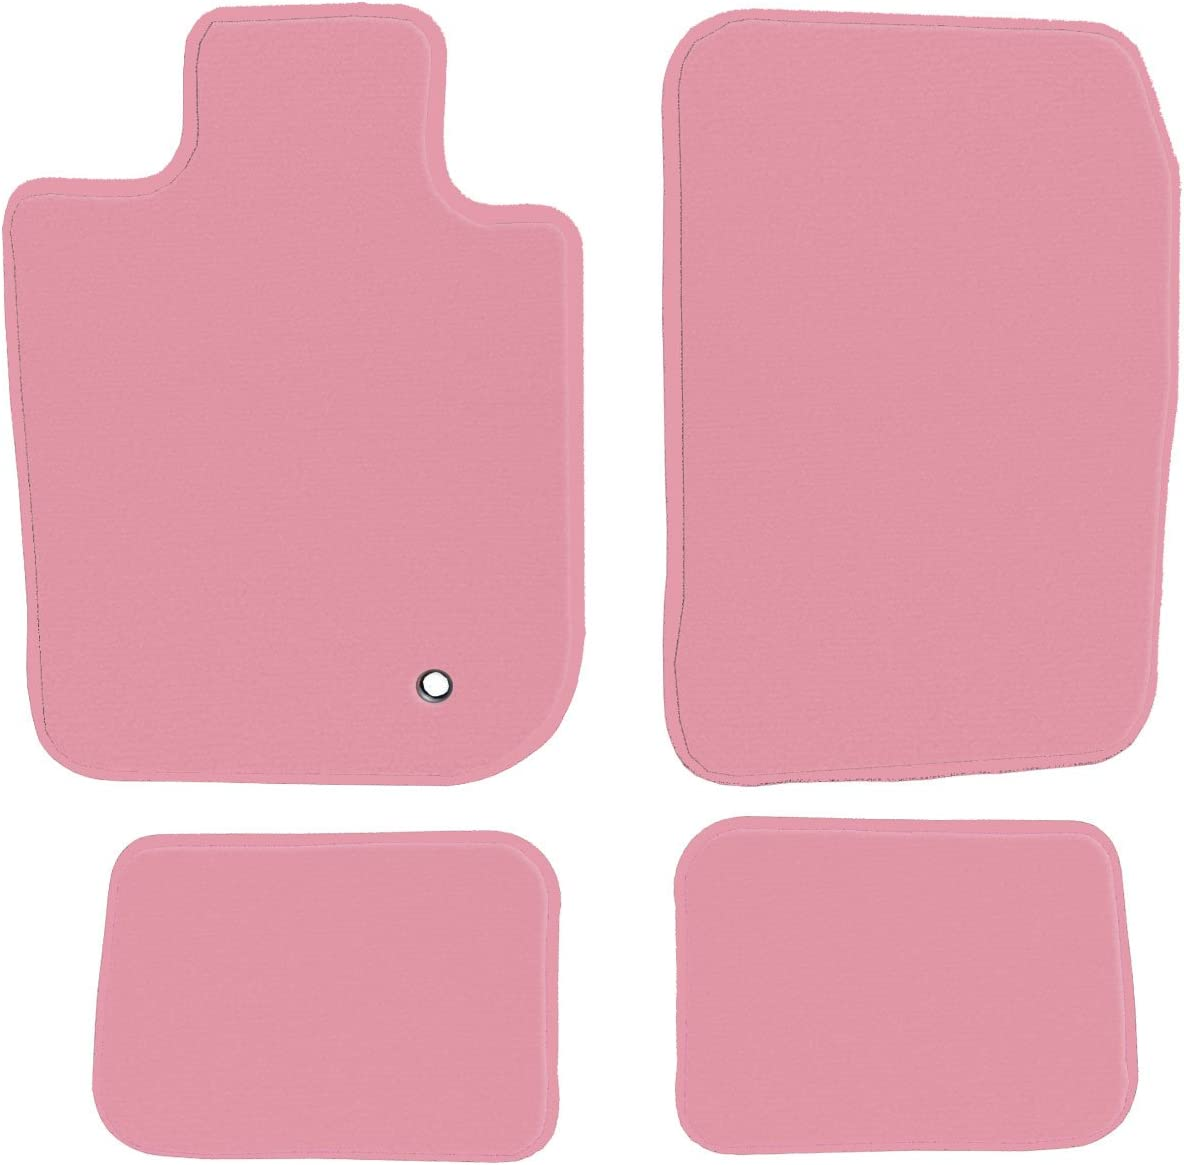 1995 GGBAILEY Ford Bronco 1993 1996 Pink Driver 1994 Passenger /& Rear Floor Mats